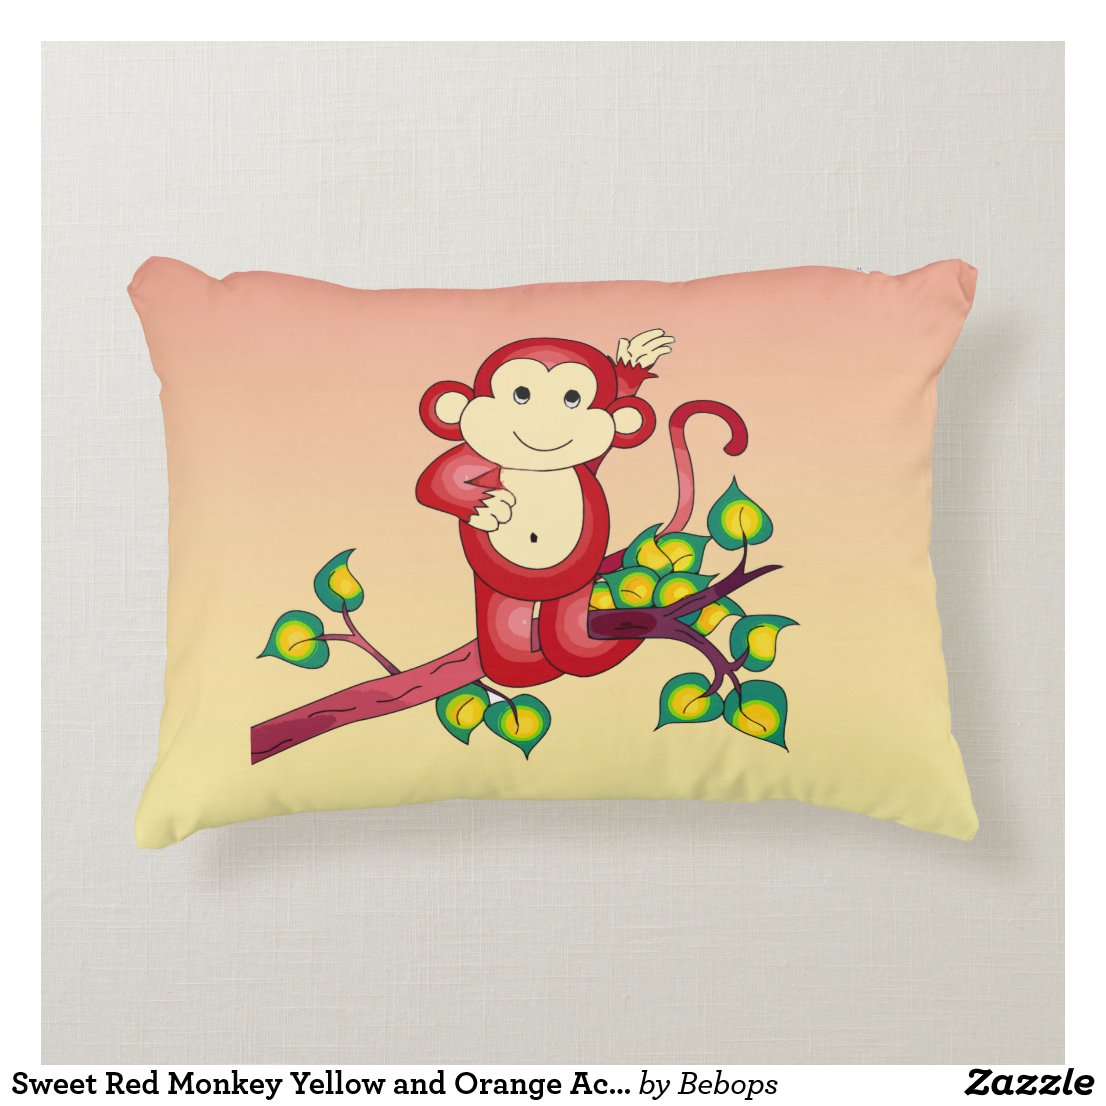 Sweet Red Monkey Yellow and Orange Accent Pillow